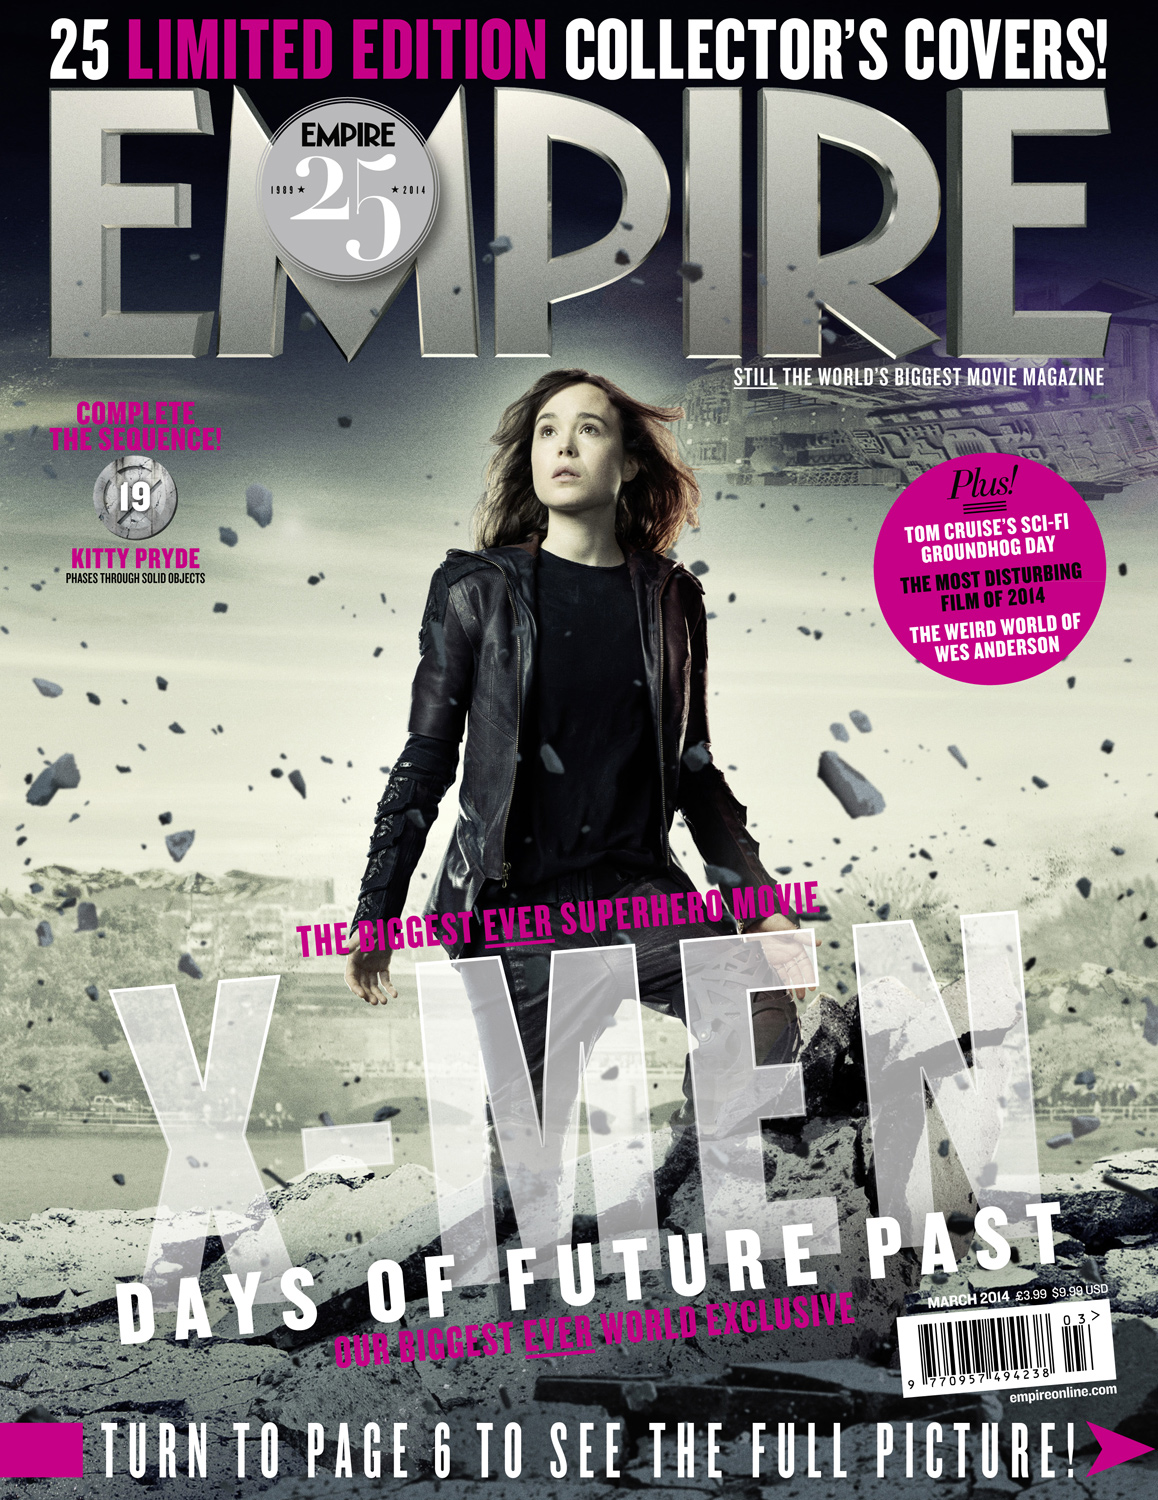 Empire - XDOFP Cover - 019 - Kitty Pryde